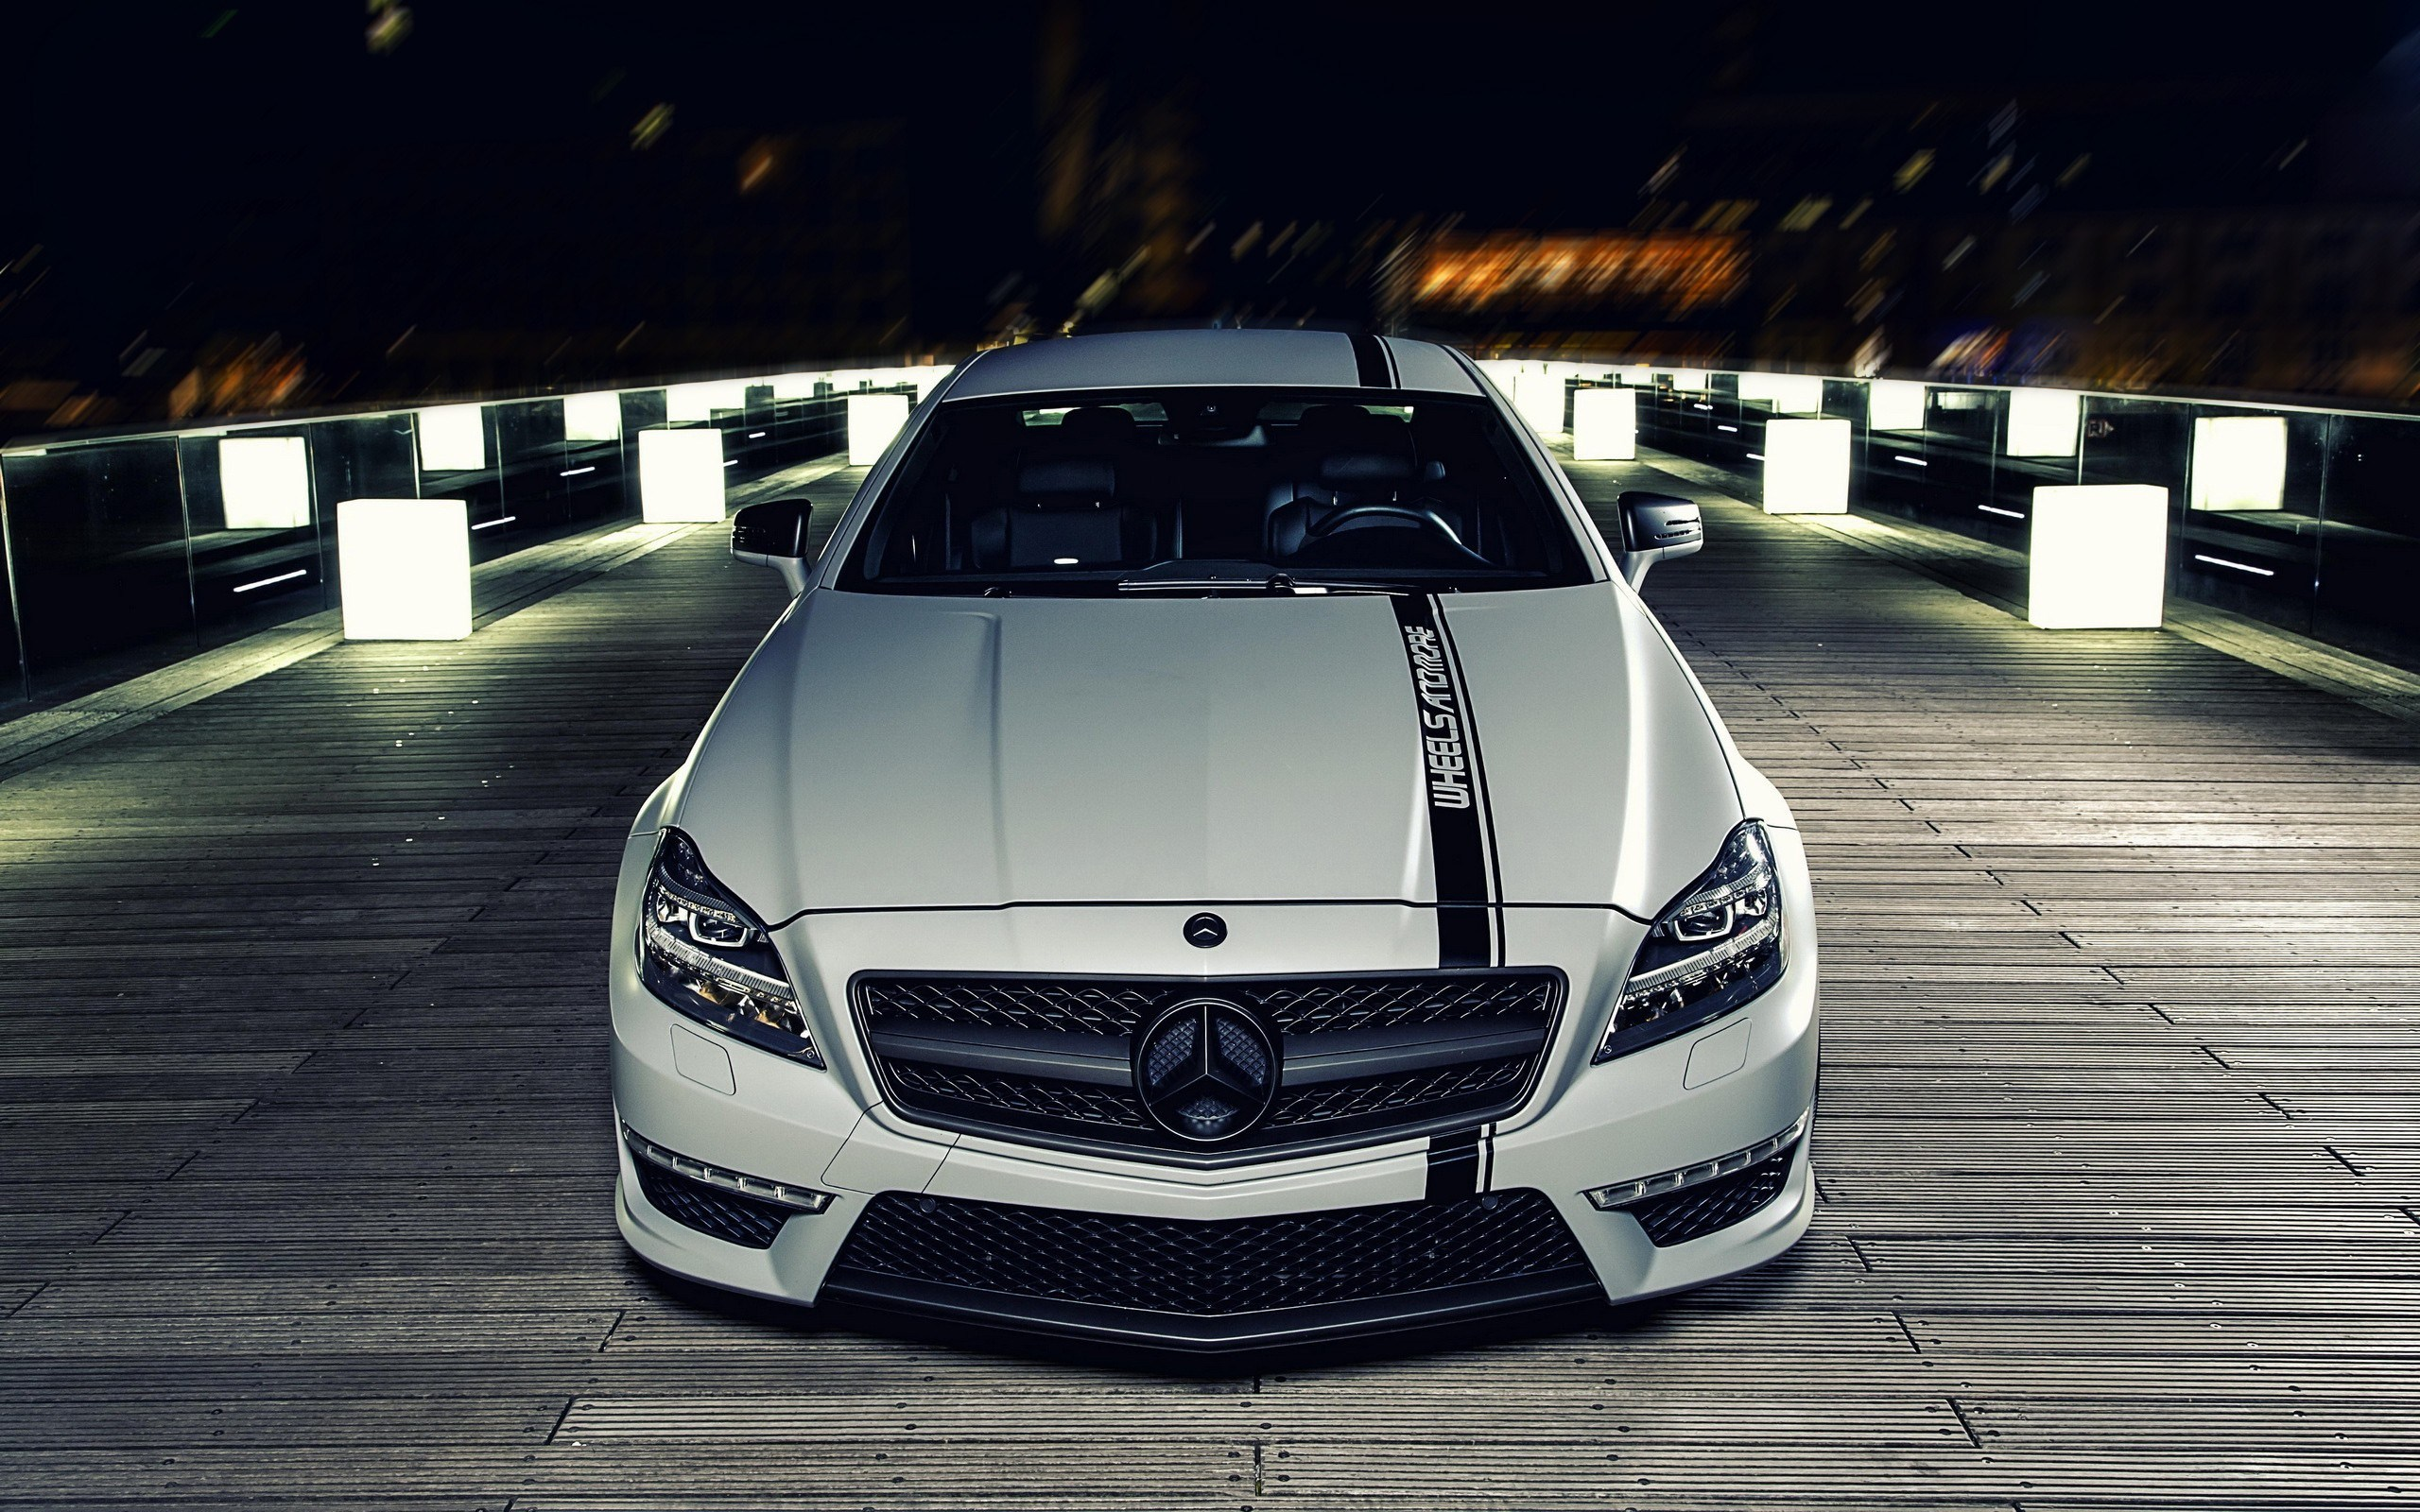 Cool AMG Wallpaper 25089 1920x1080 px